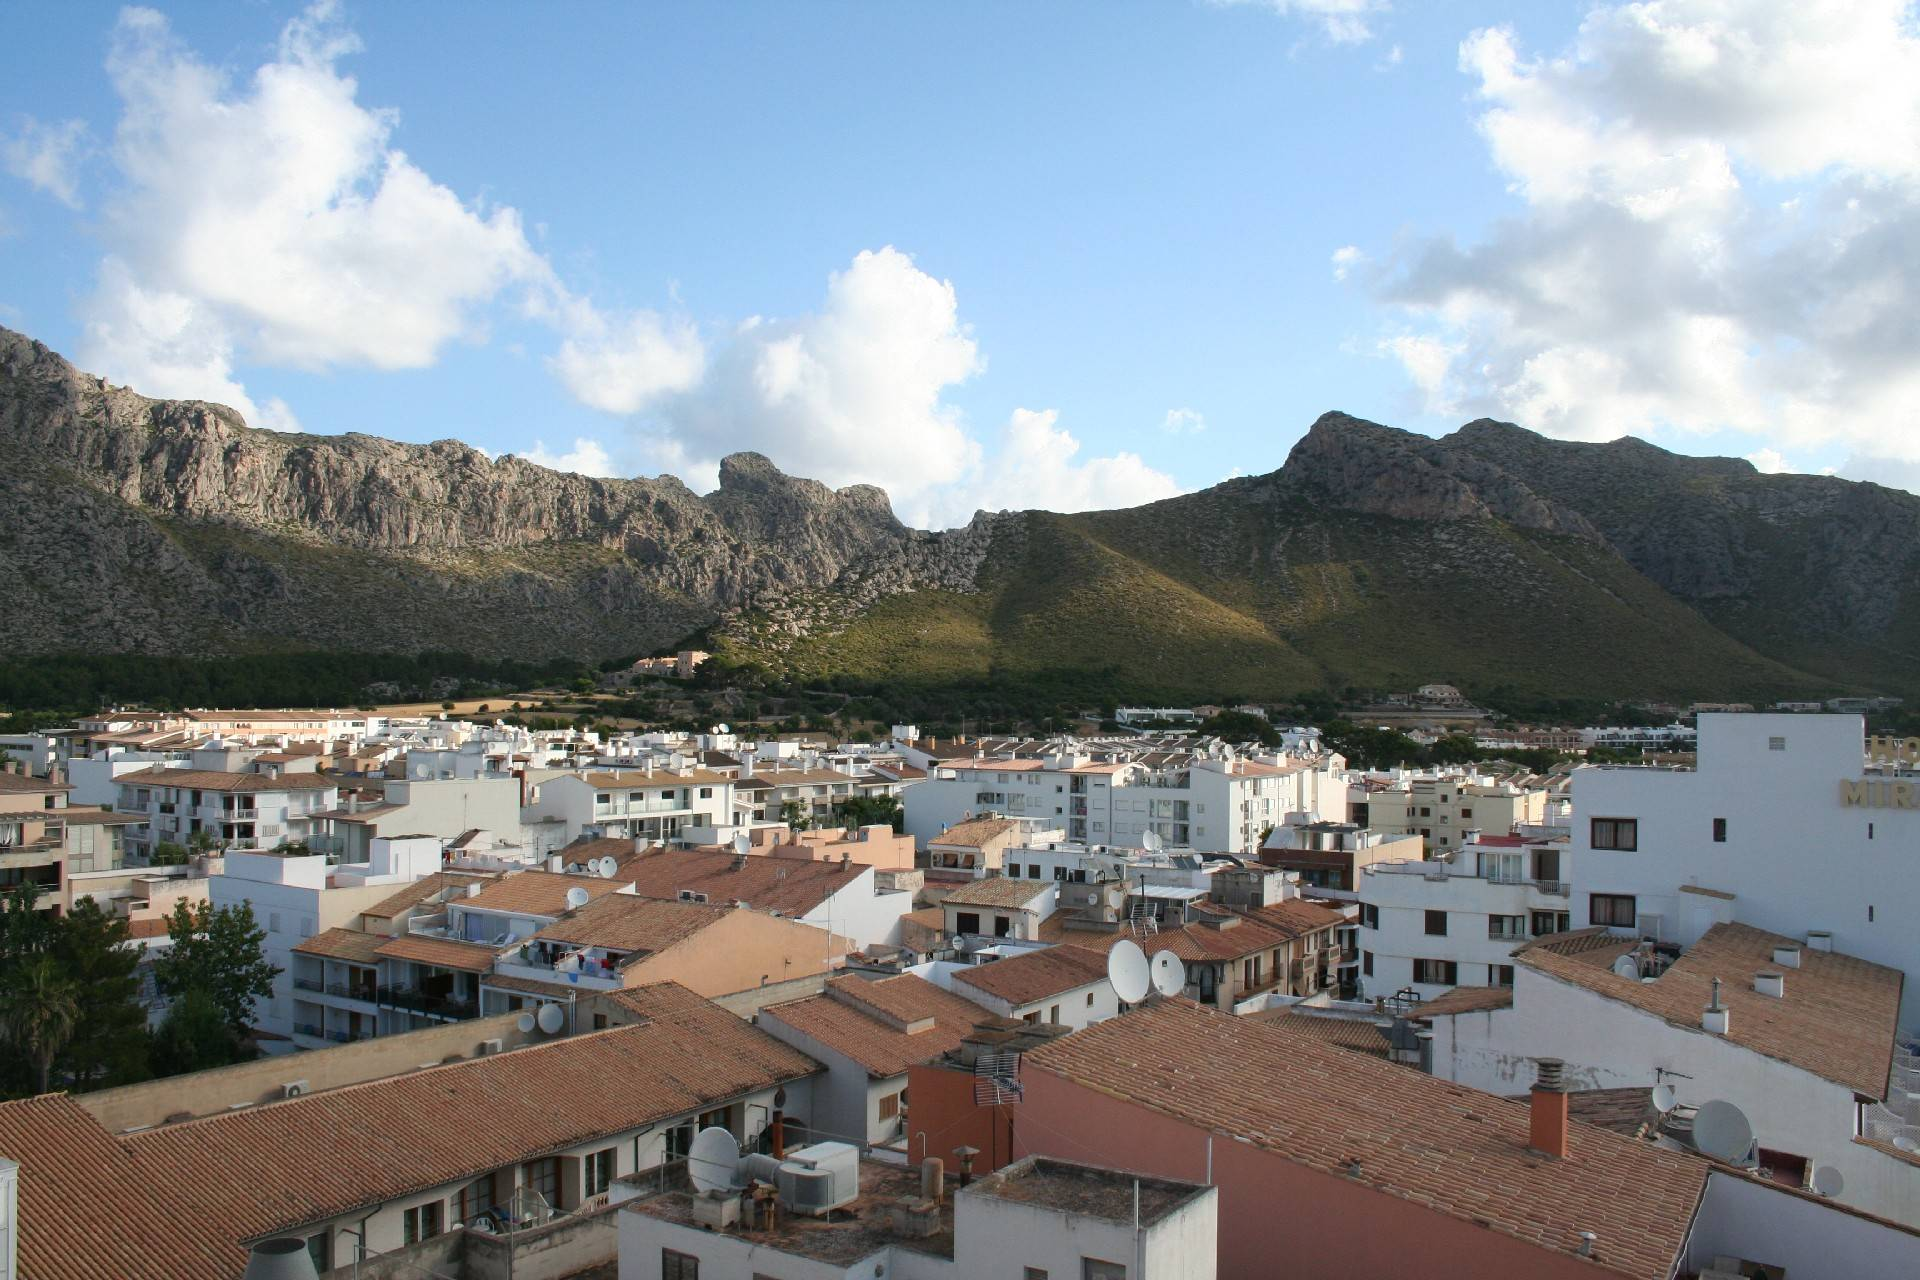 mountain-rooftops-view-from-hoposa-daina--port-de-pollensa